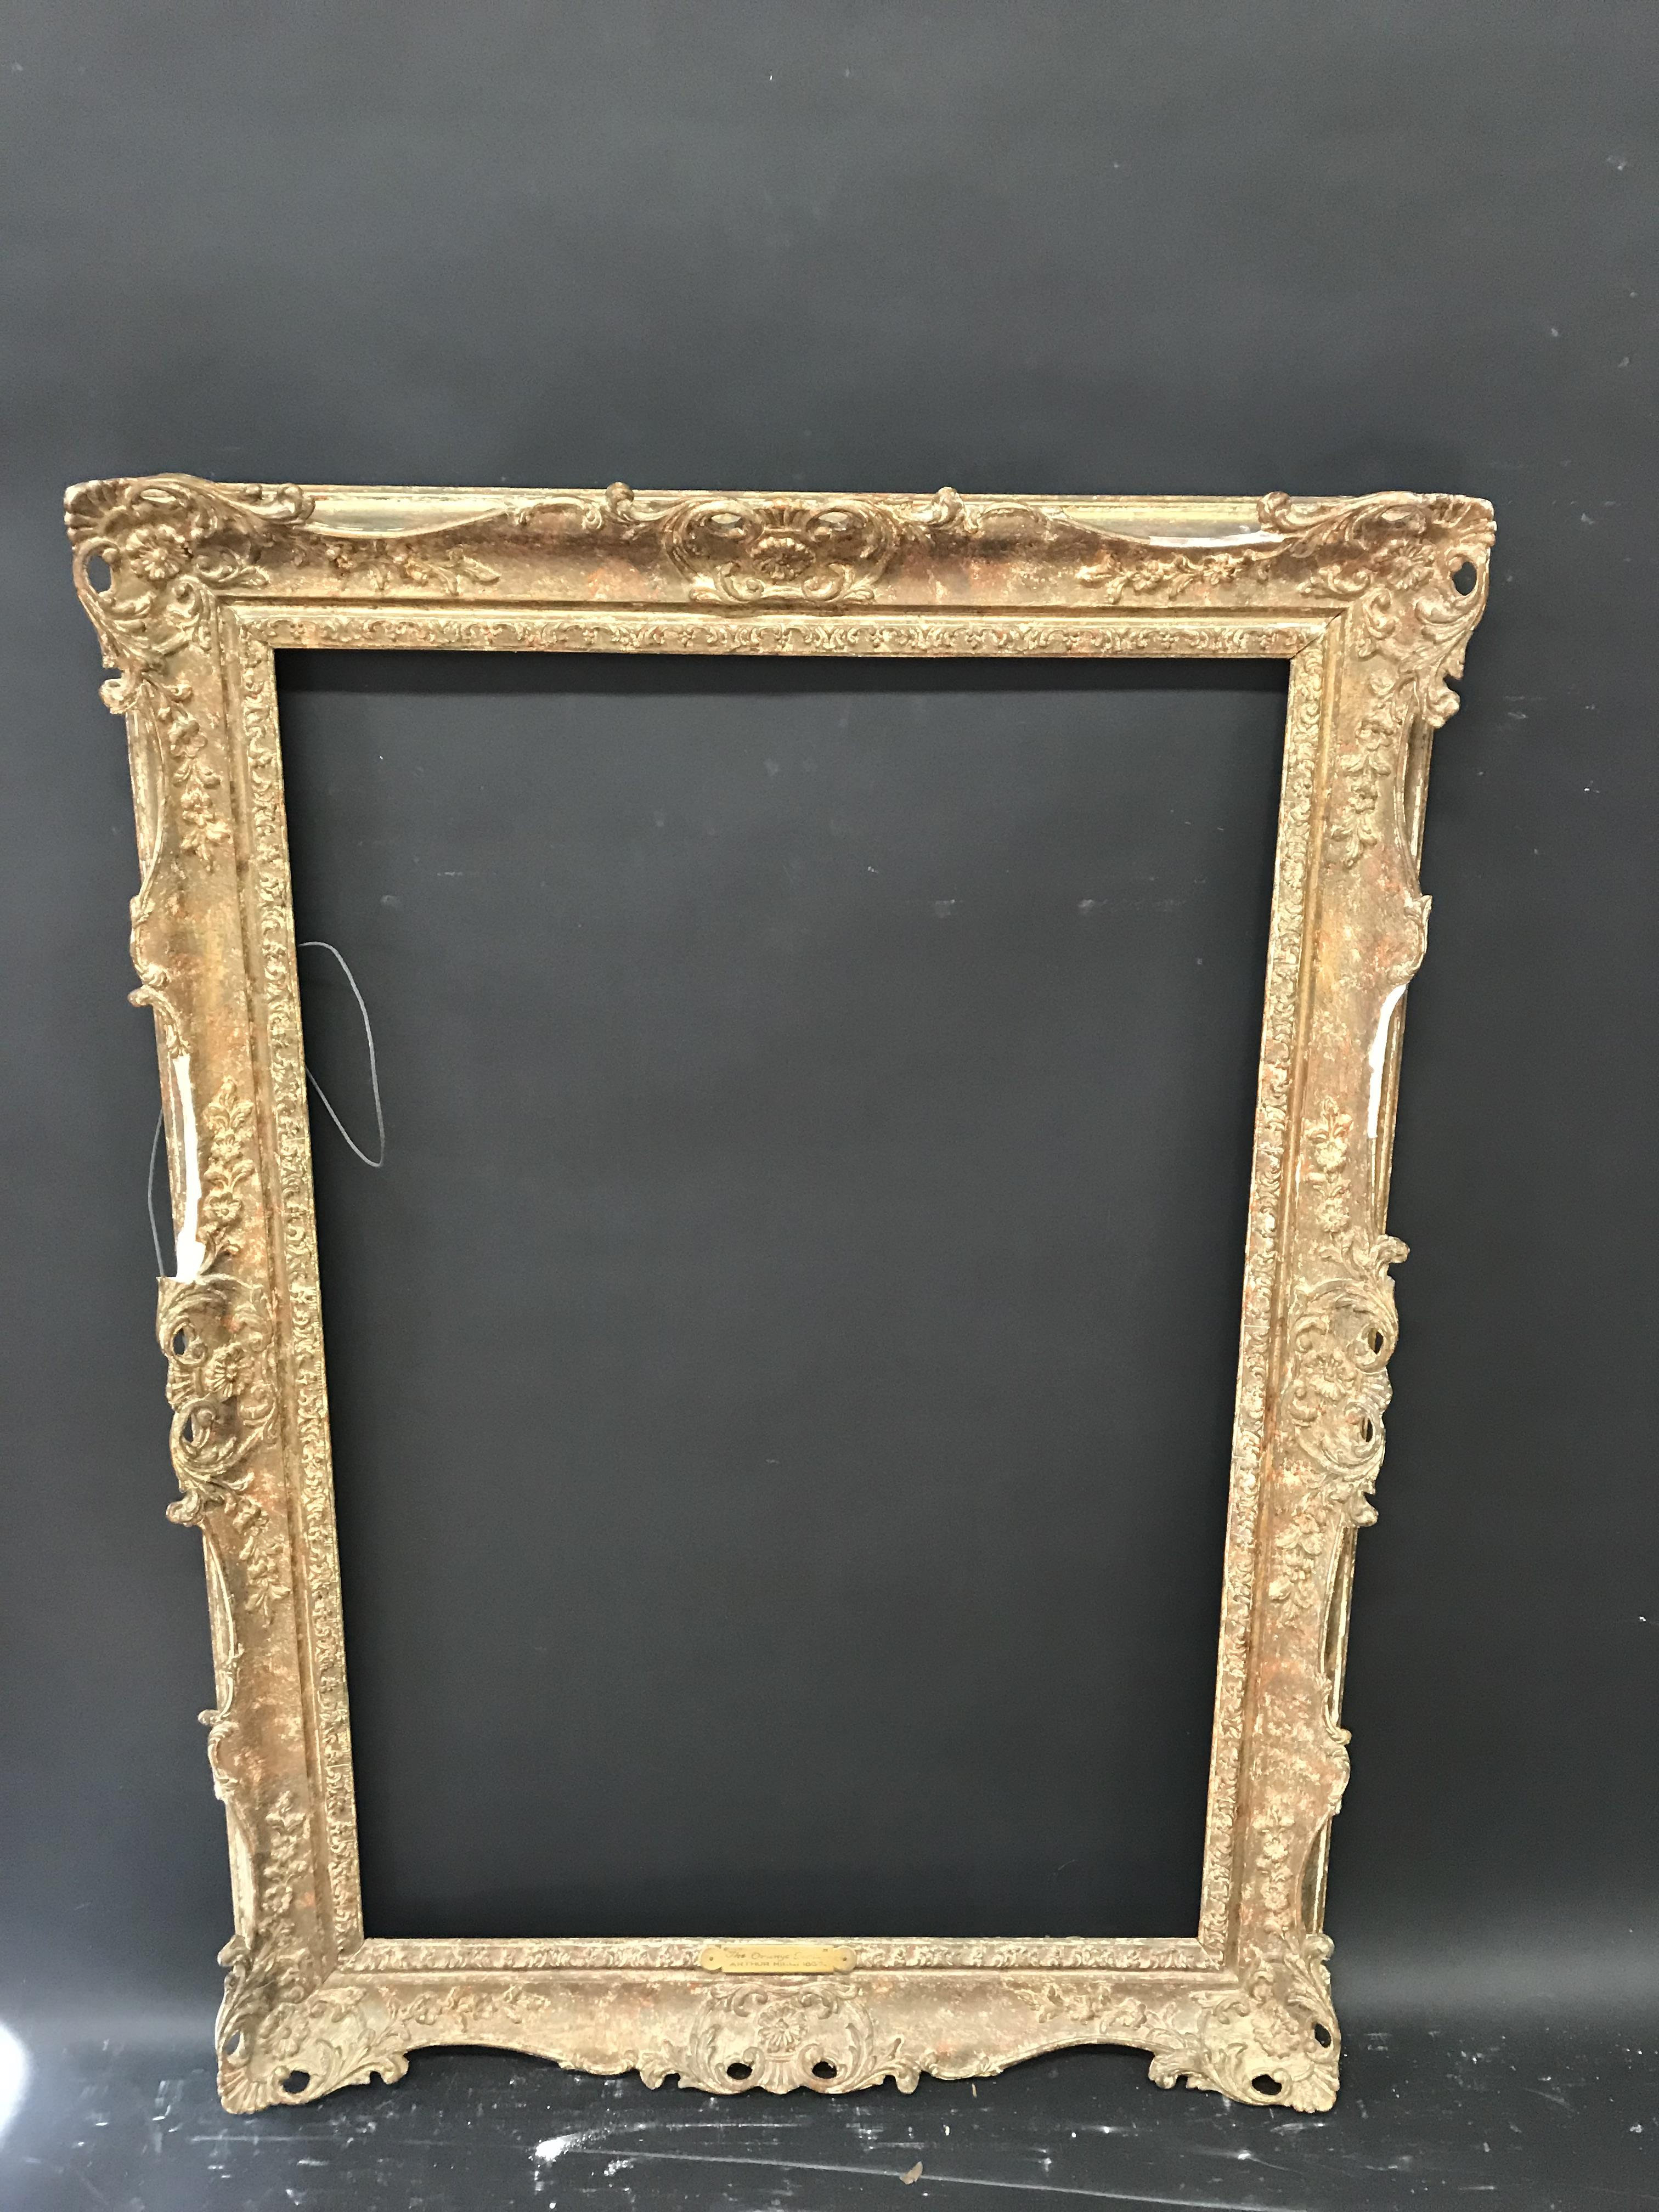 Lot 51 - 20th Century English School. A Gilt Composition Frame, with Swept and Pierced Centres and Corners,